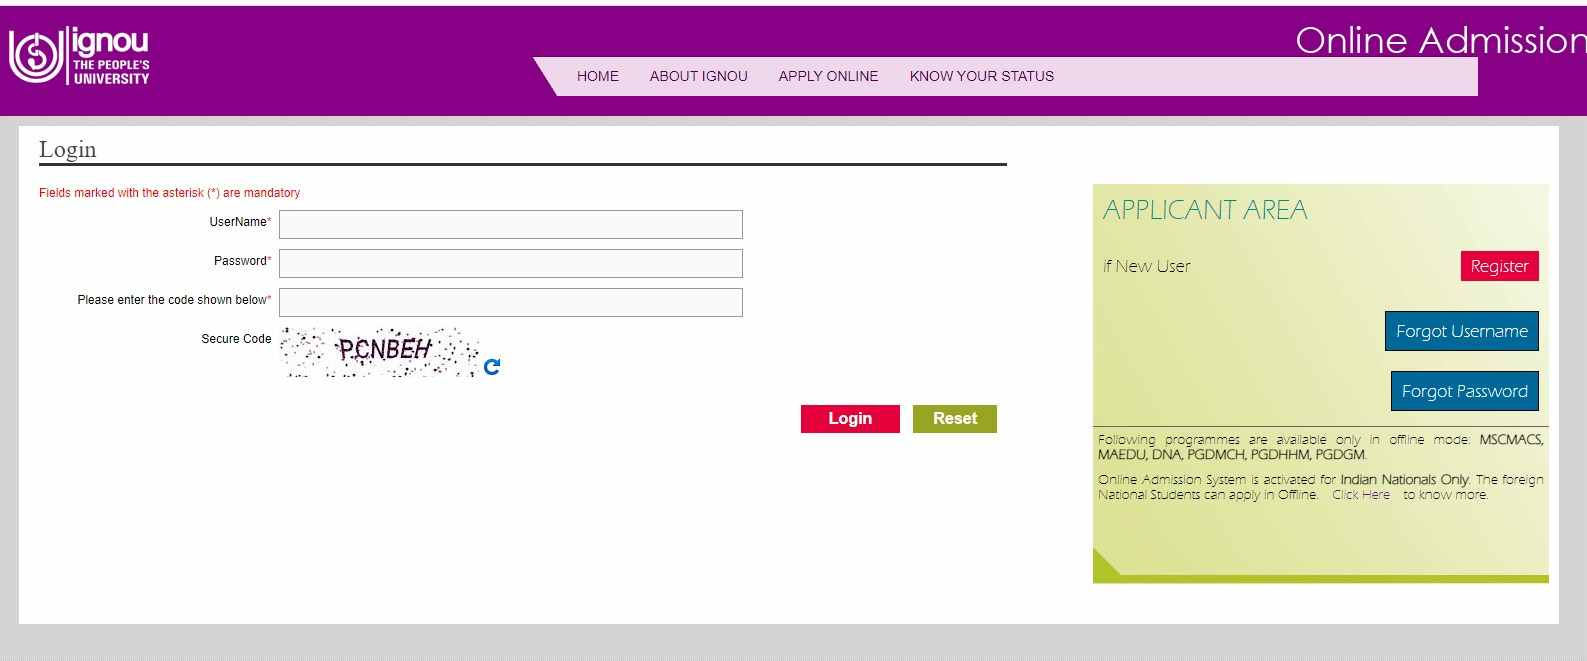 IGNOU Login Panel